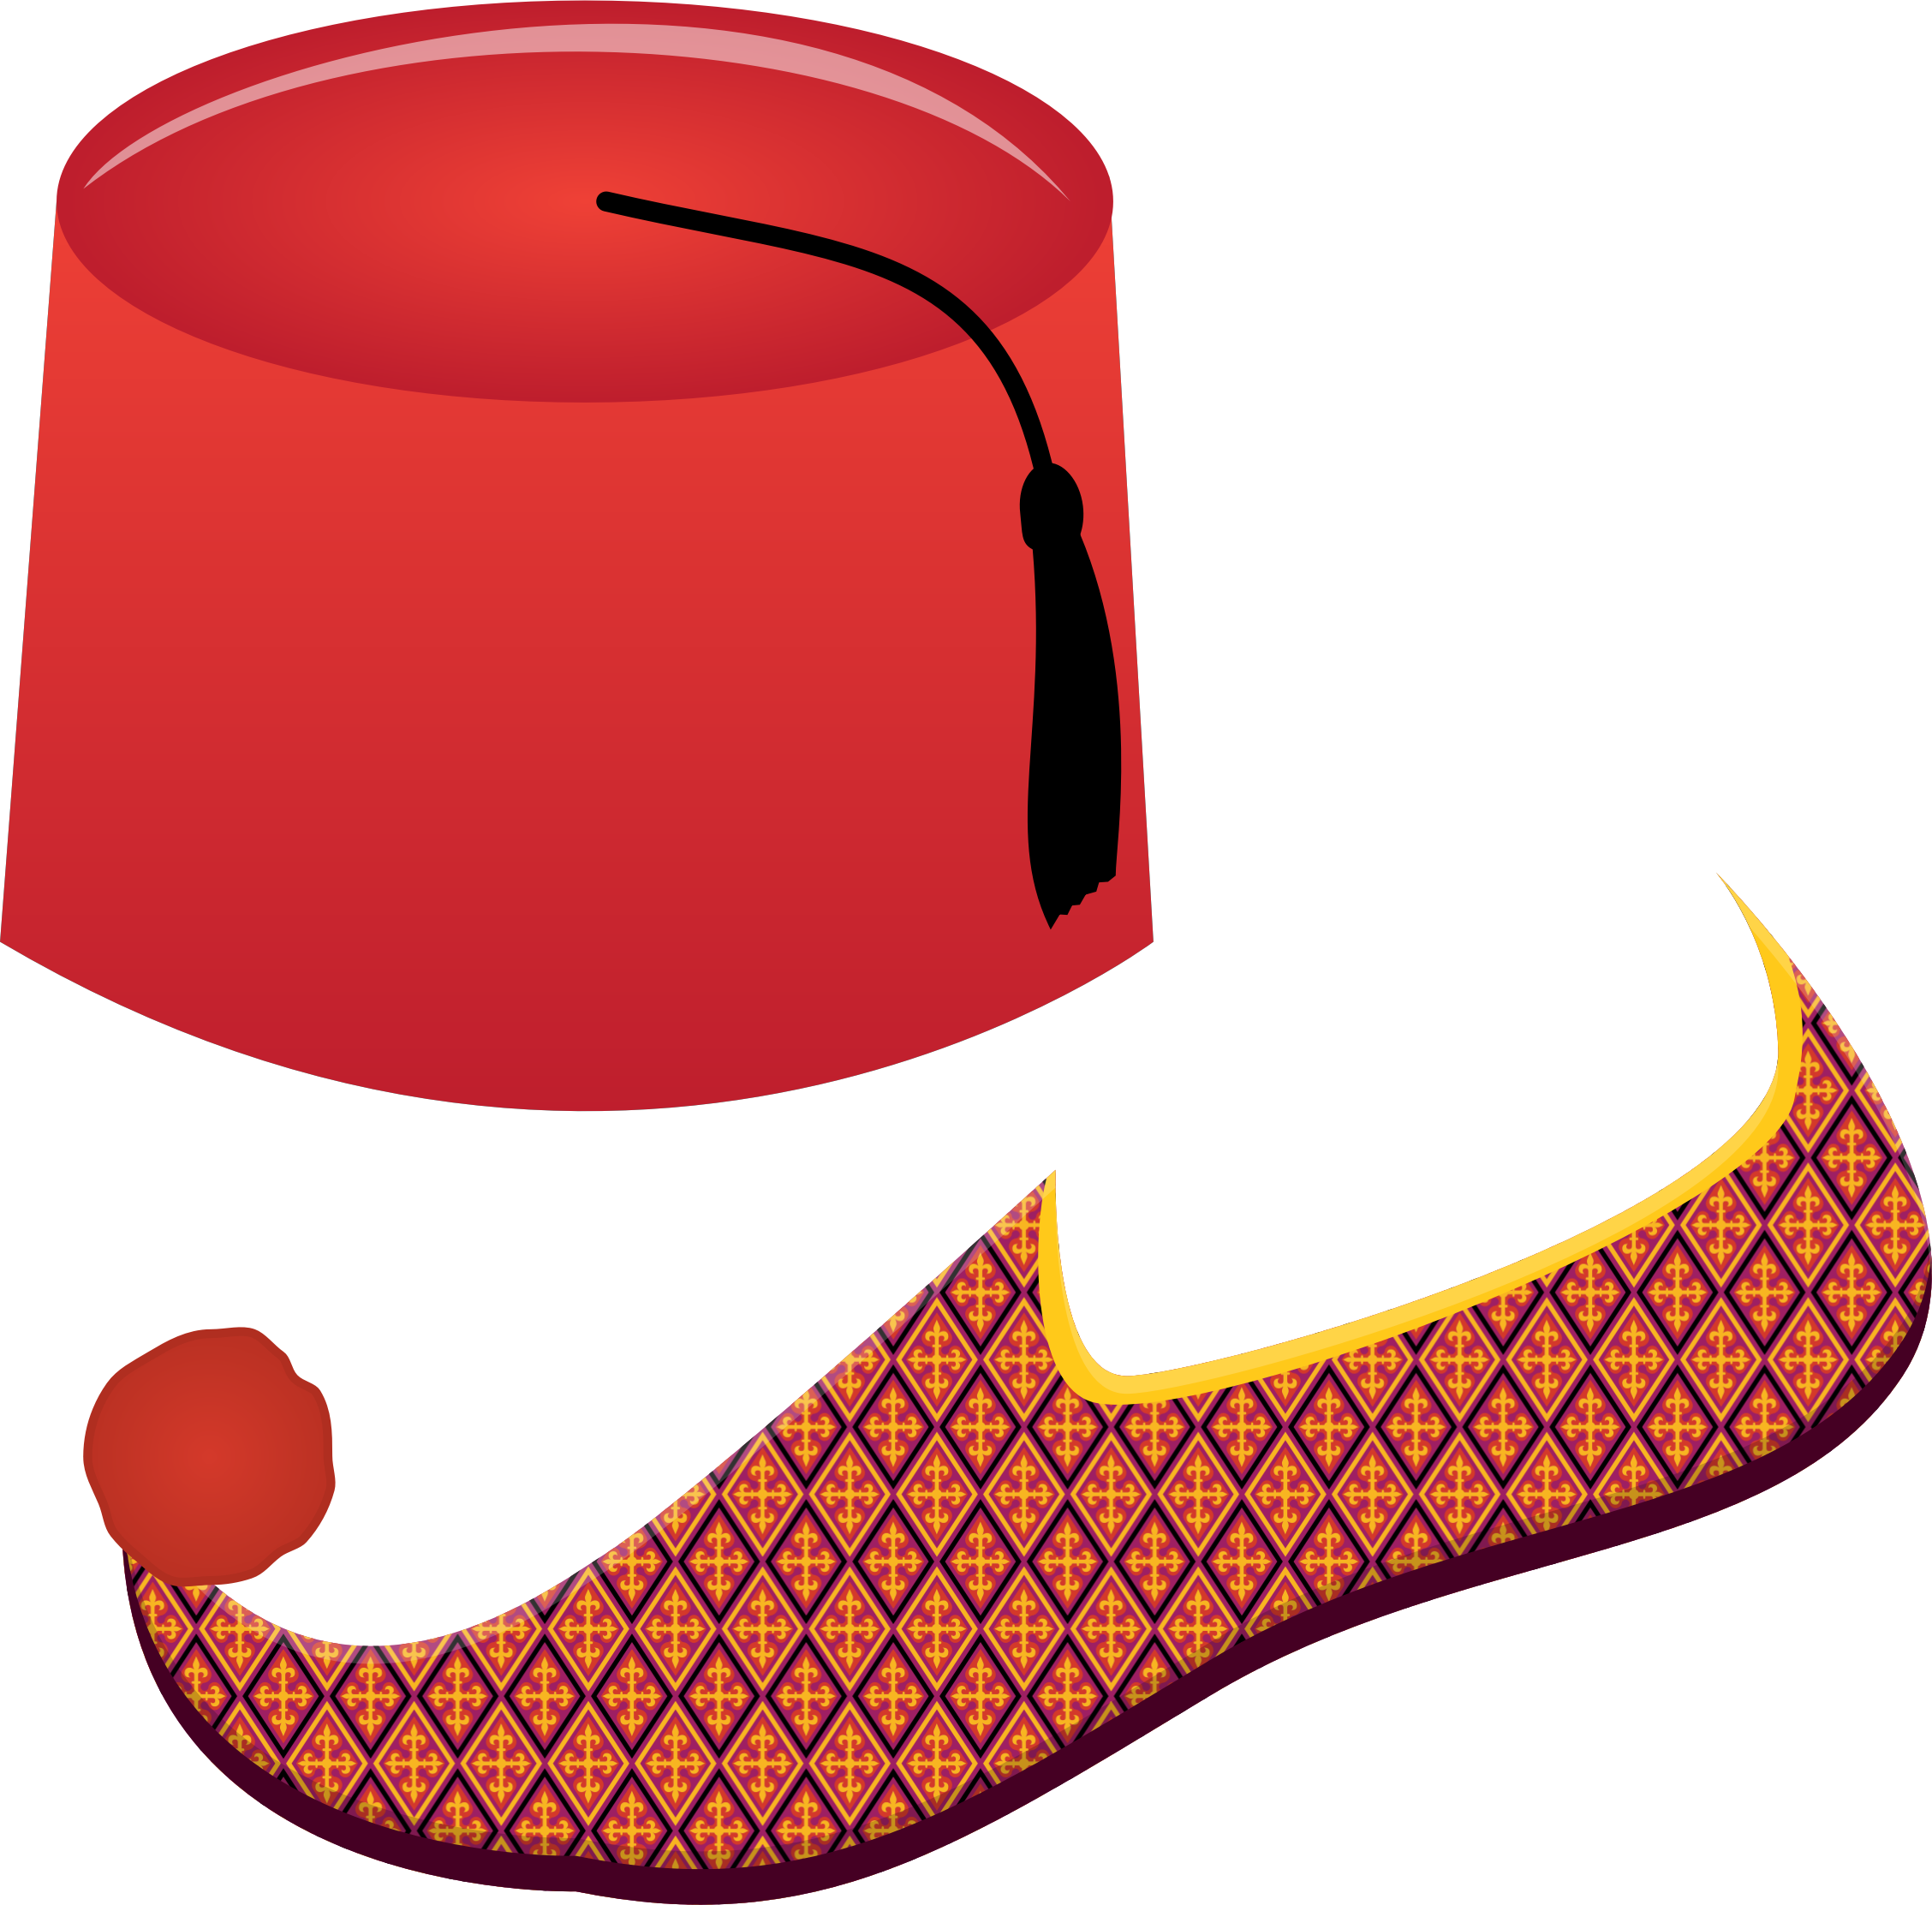 Turkey with a hat clipart image royalty free download Fez clipart - Clipground image royalty free download